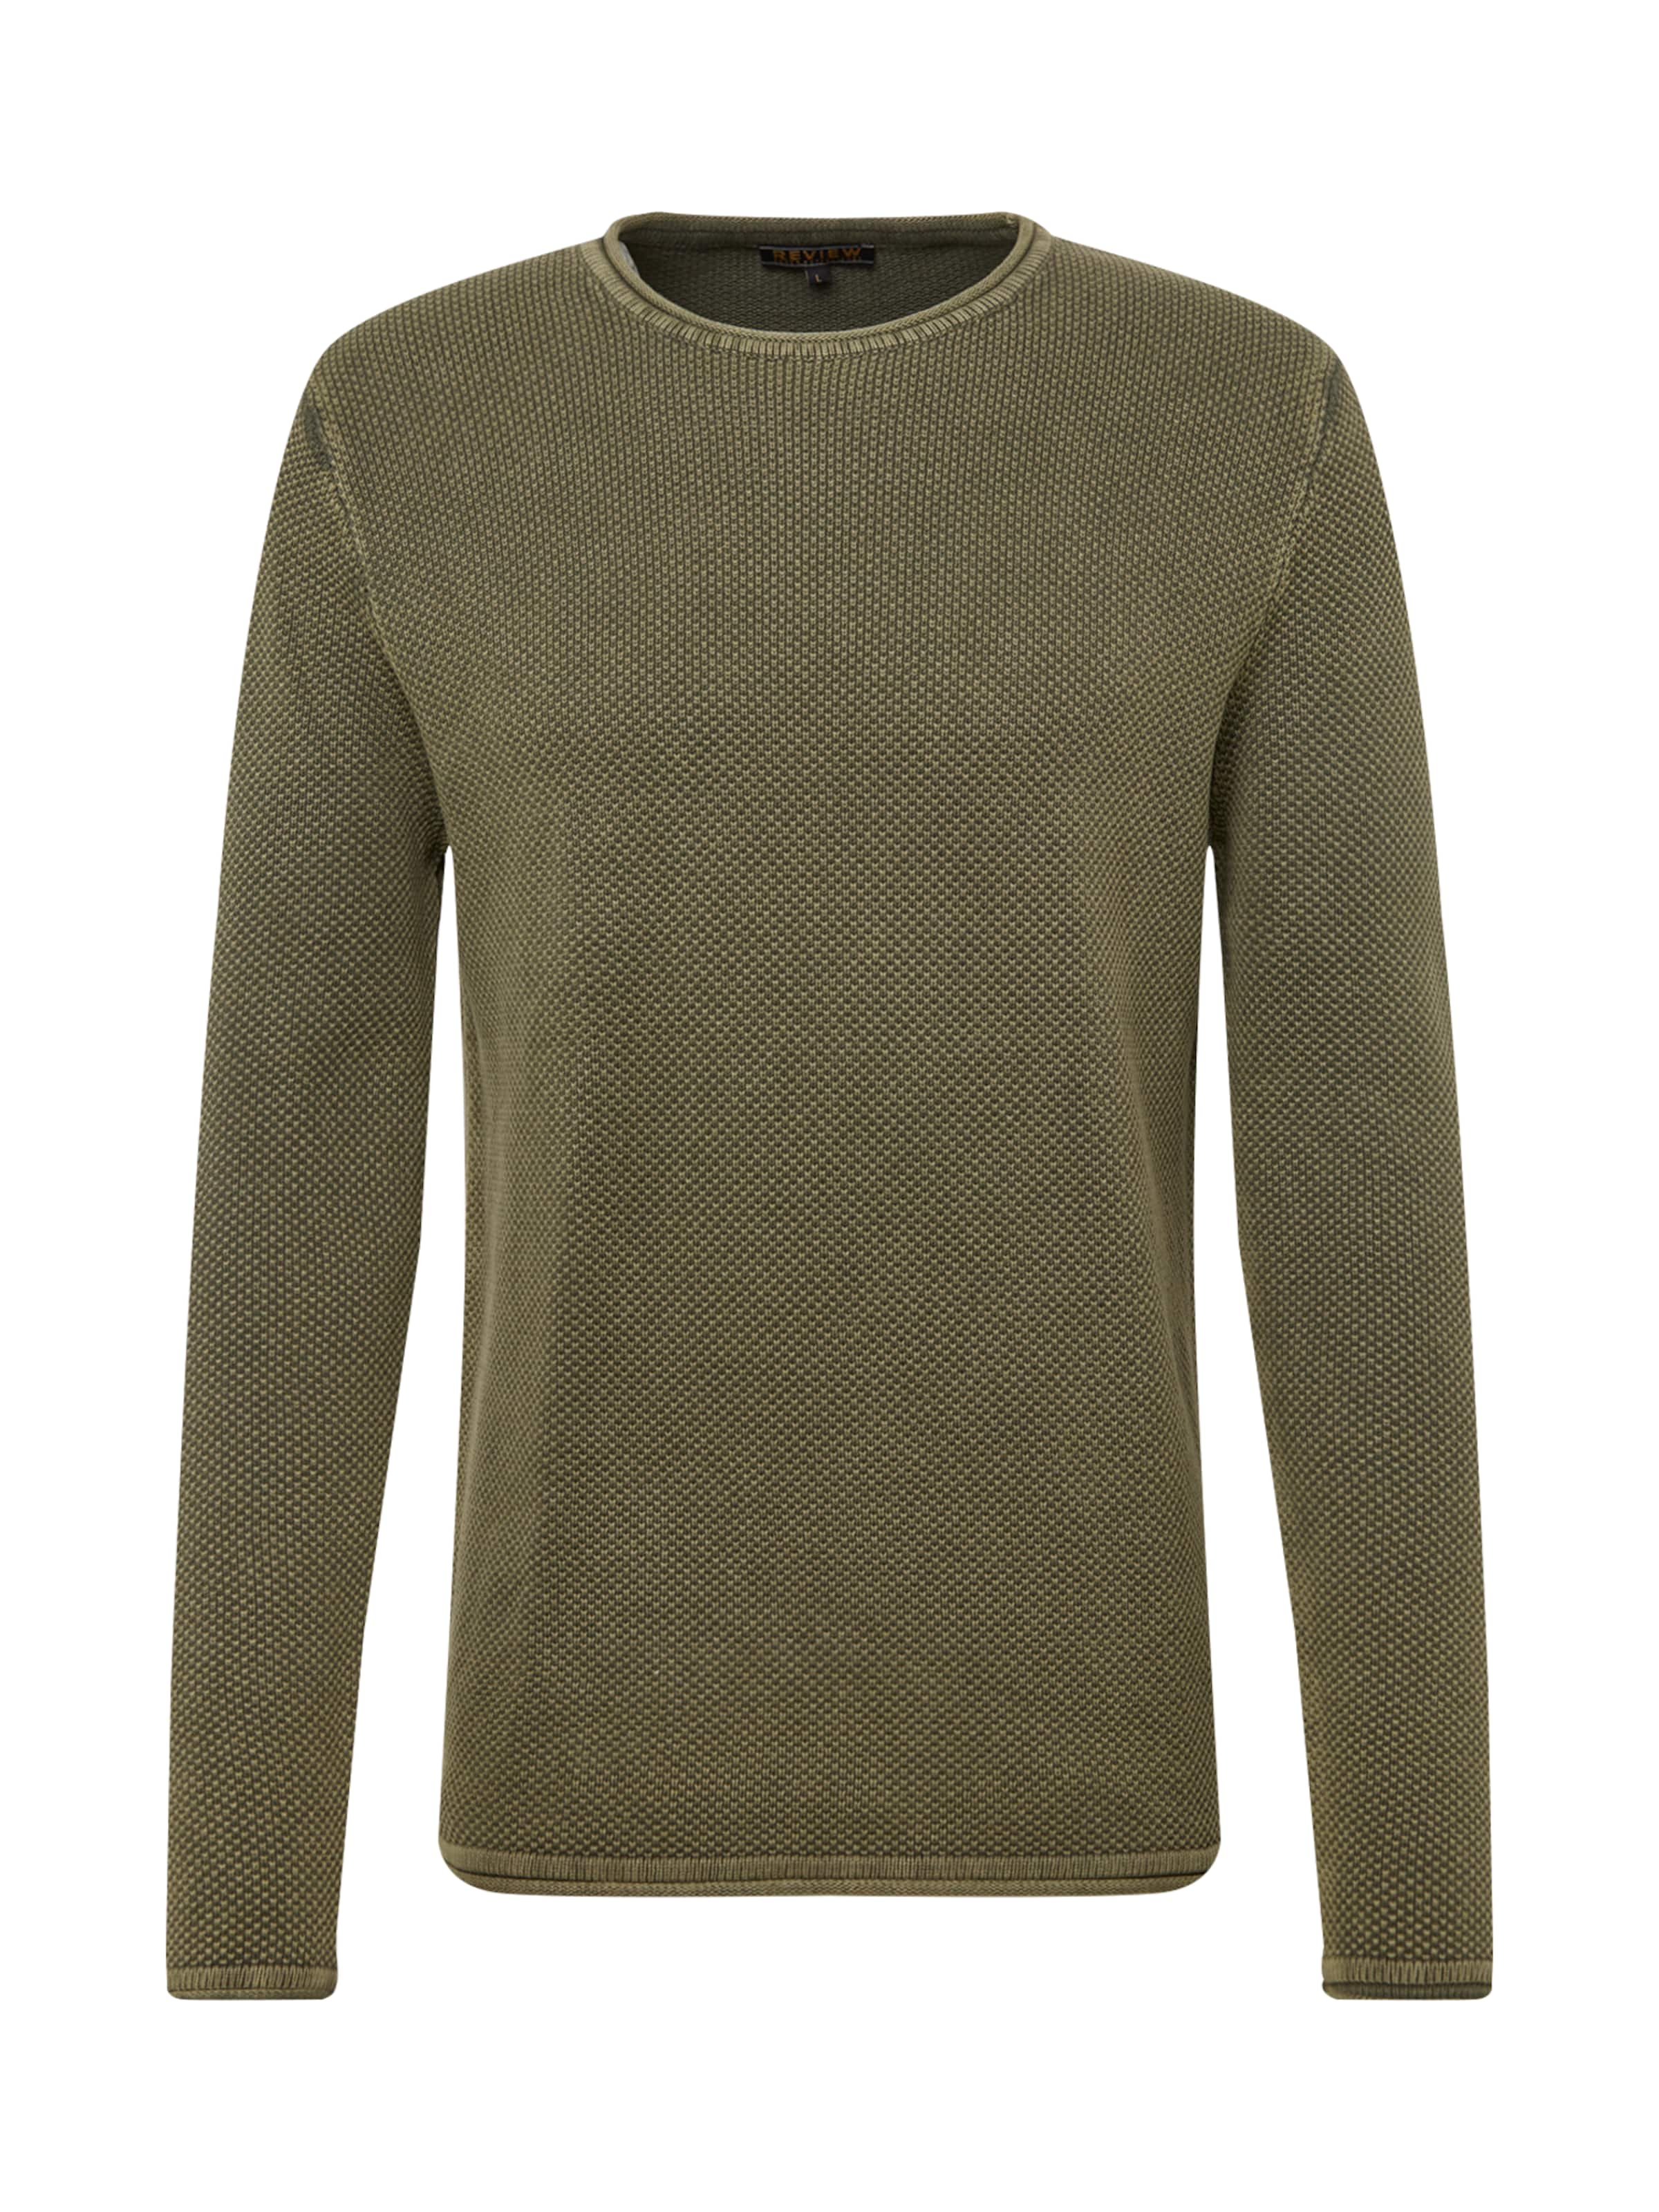 Review In Review Oliv In Pullover Pullover Pullover Oliv Review In Y67mfgvIby